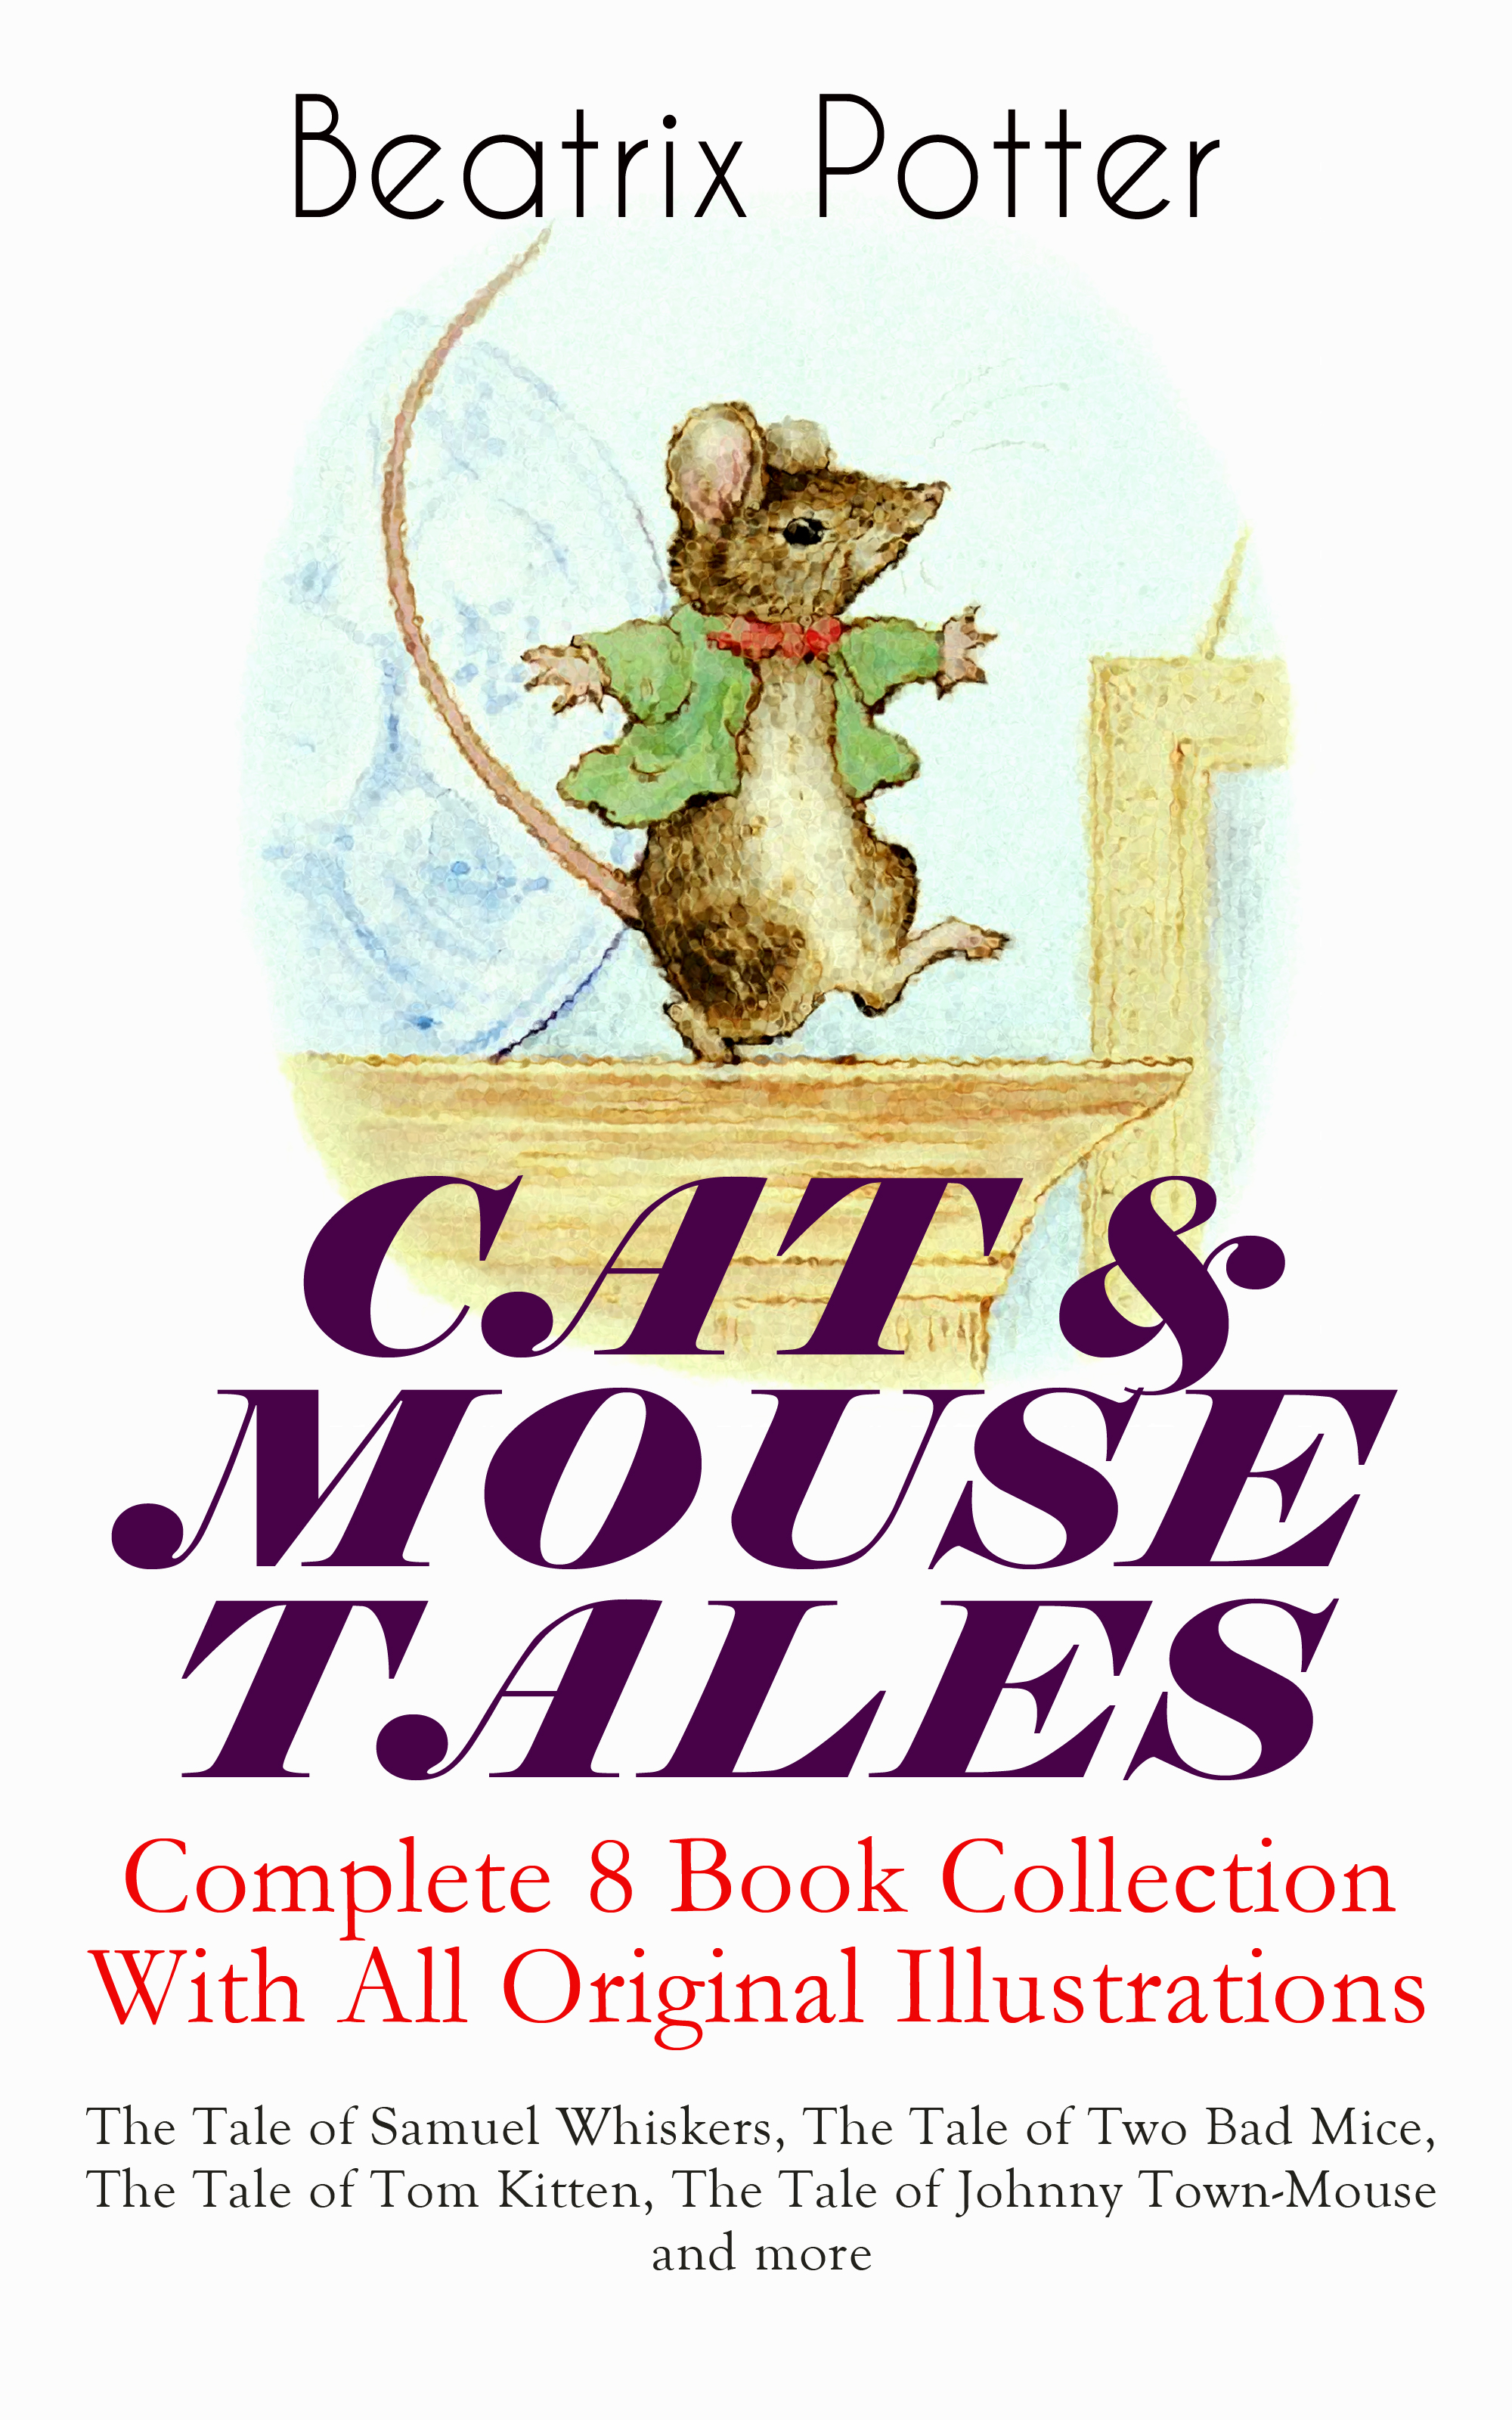 Beatrix Potter CAT & MOUSE TALES – Complete 8 Book Collection With All Original Illustrations: The Tale of Samuel Whiskers, The Tale of Two Bad Mice, The Tale of Tom Kitten, The Tale of Johnny Town-Mouse and more the killings tale